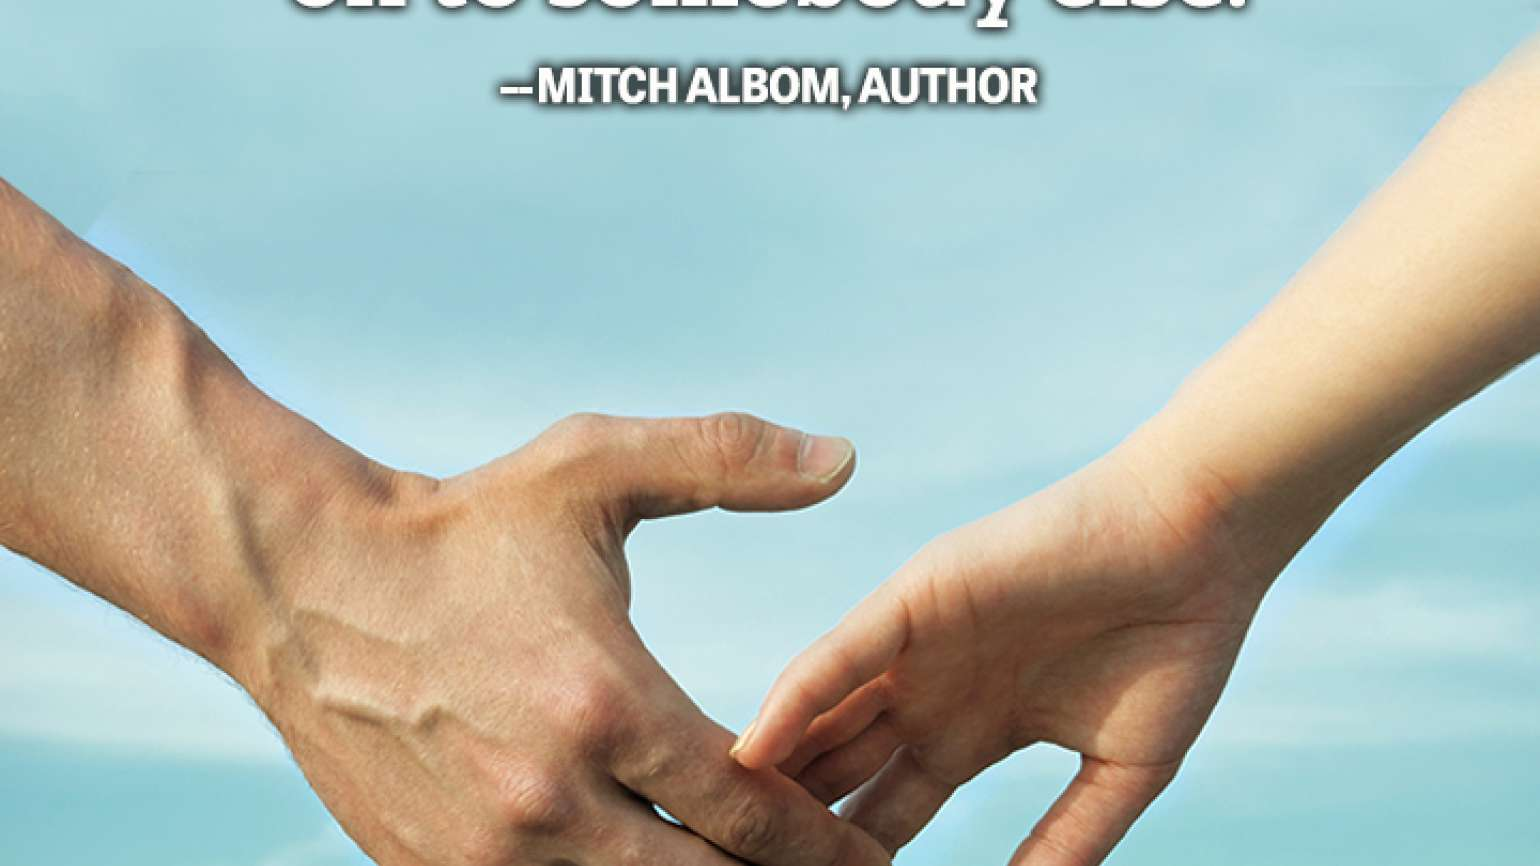 sacrifice precious passing on Mitch Albom